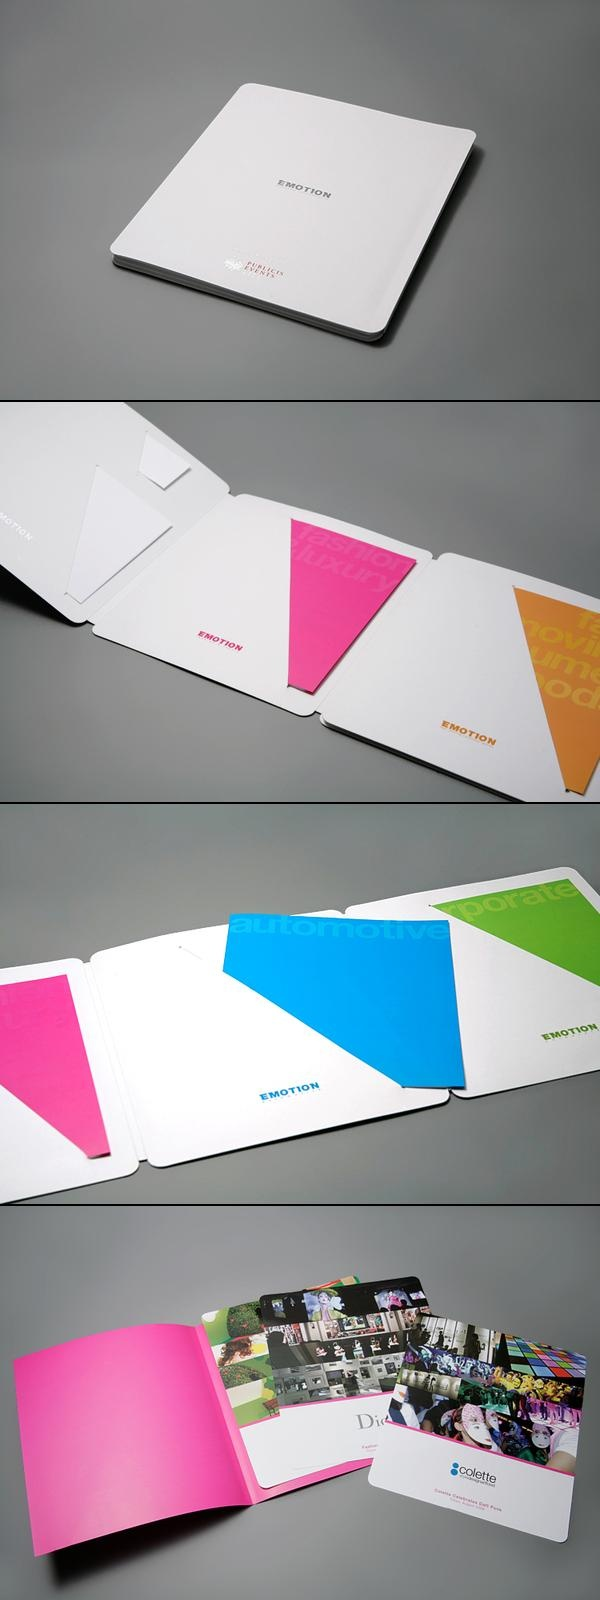 Emotion Book by Julmeme , via Behance